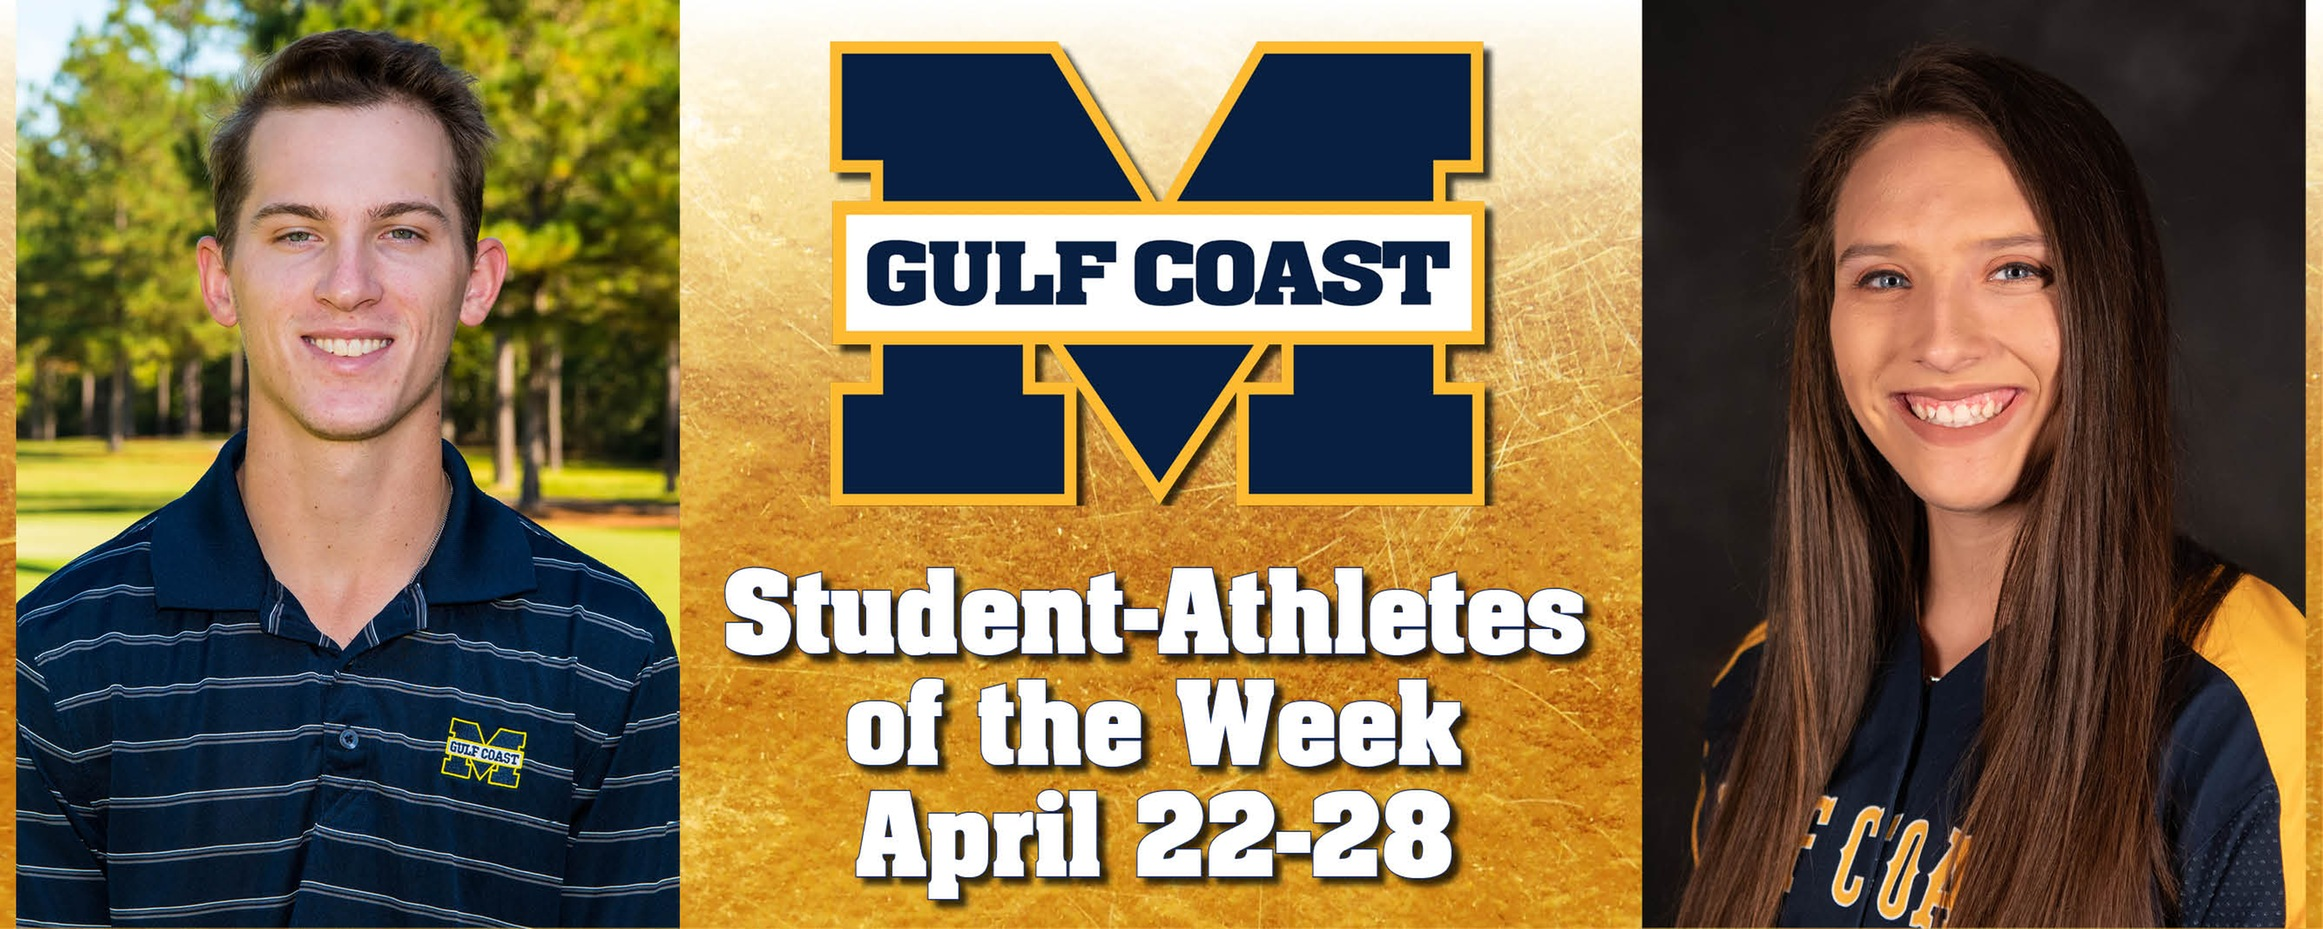 Wilkinson, Cade named MGCCC Student-Athletes of the Week